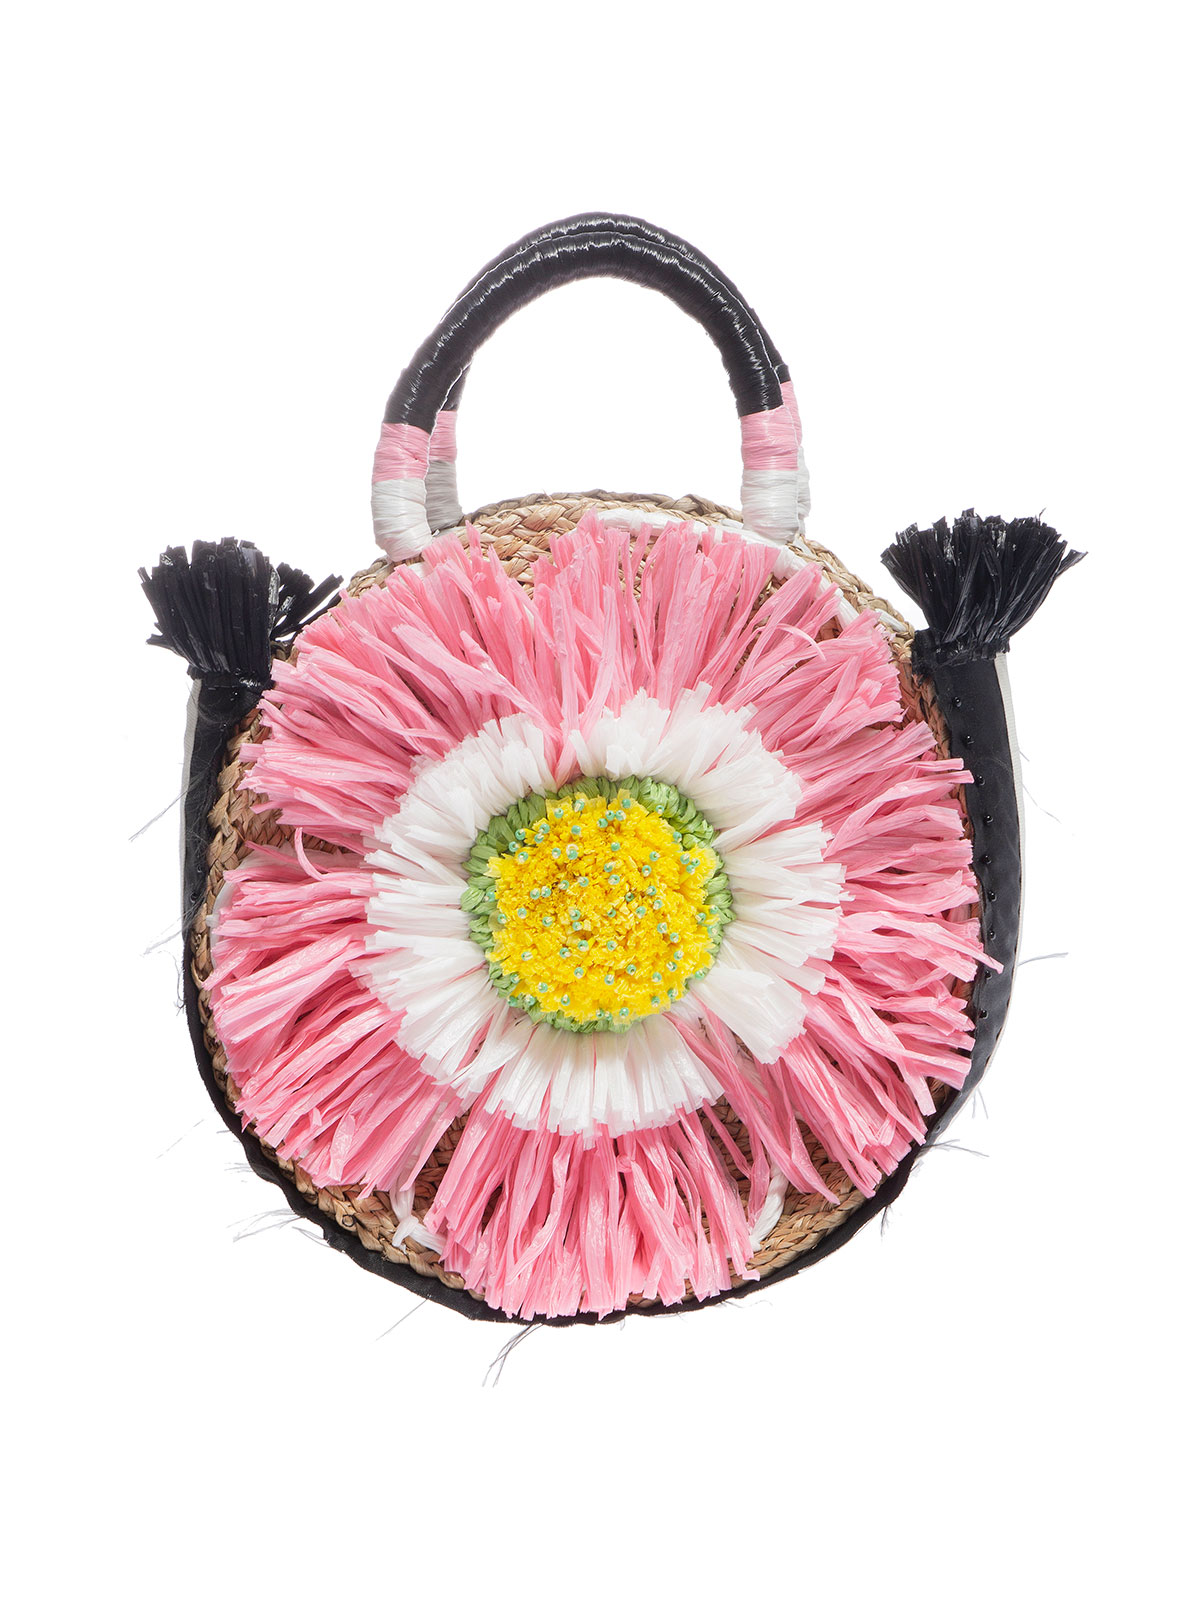 Hand-woven and embroidered straw bag